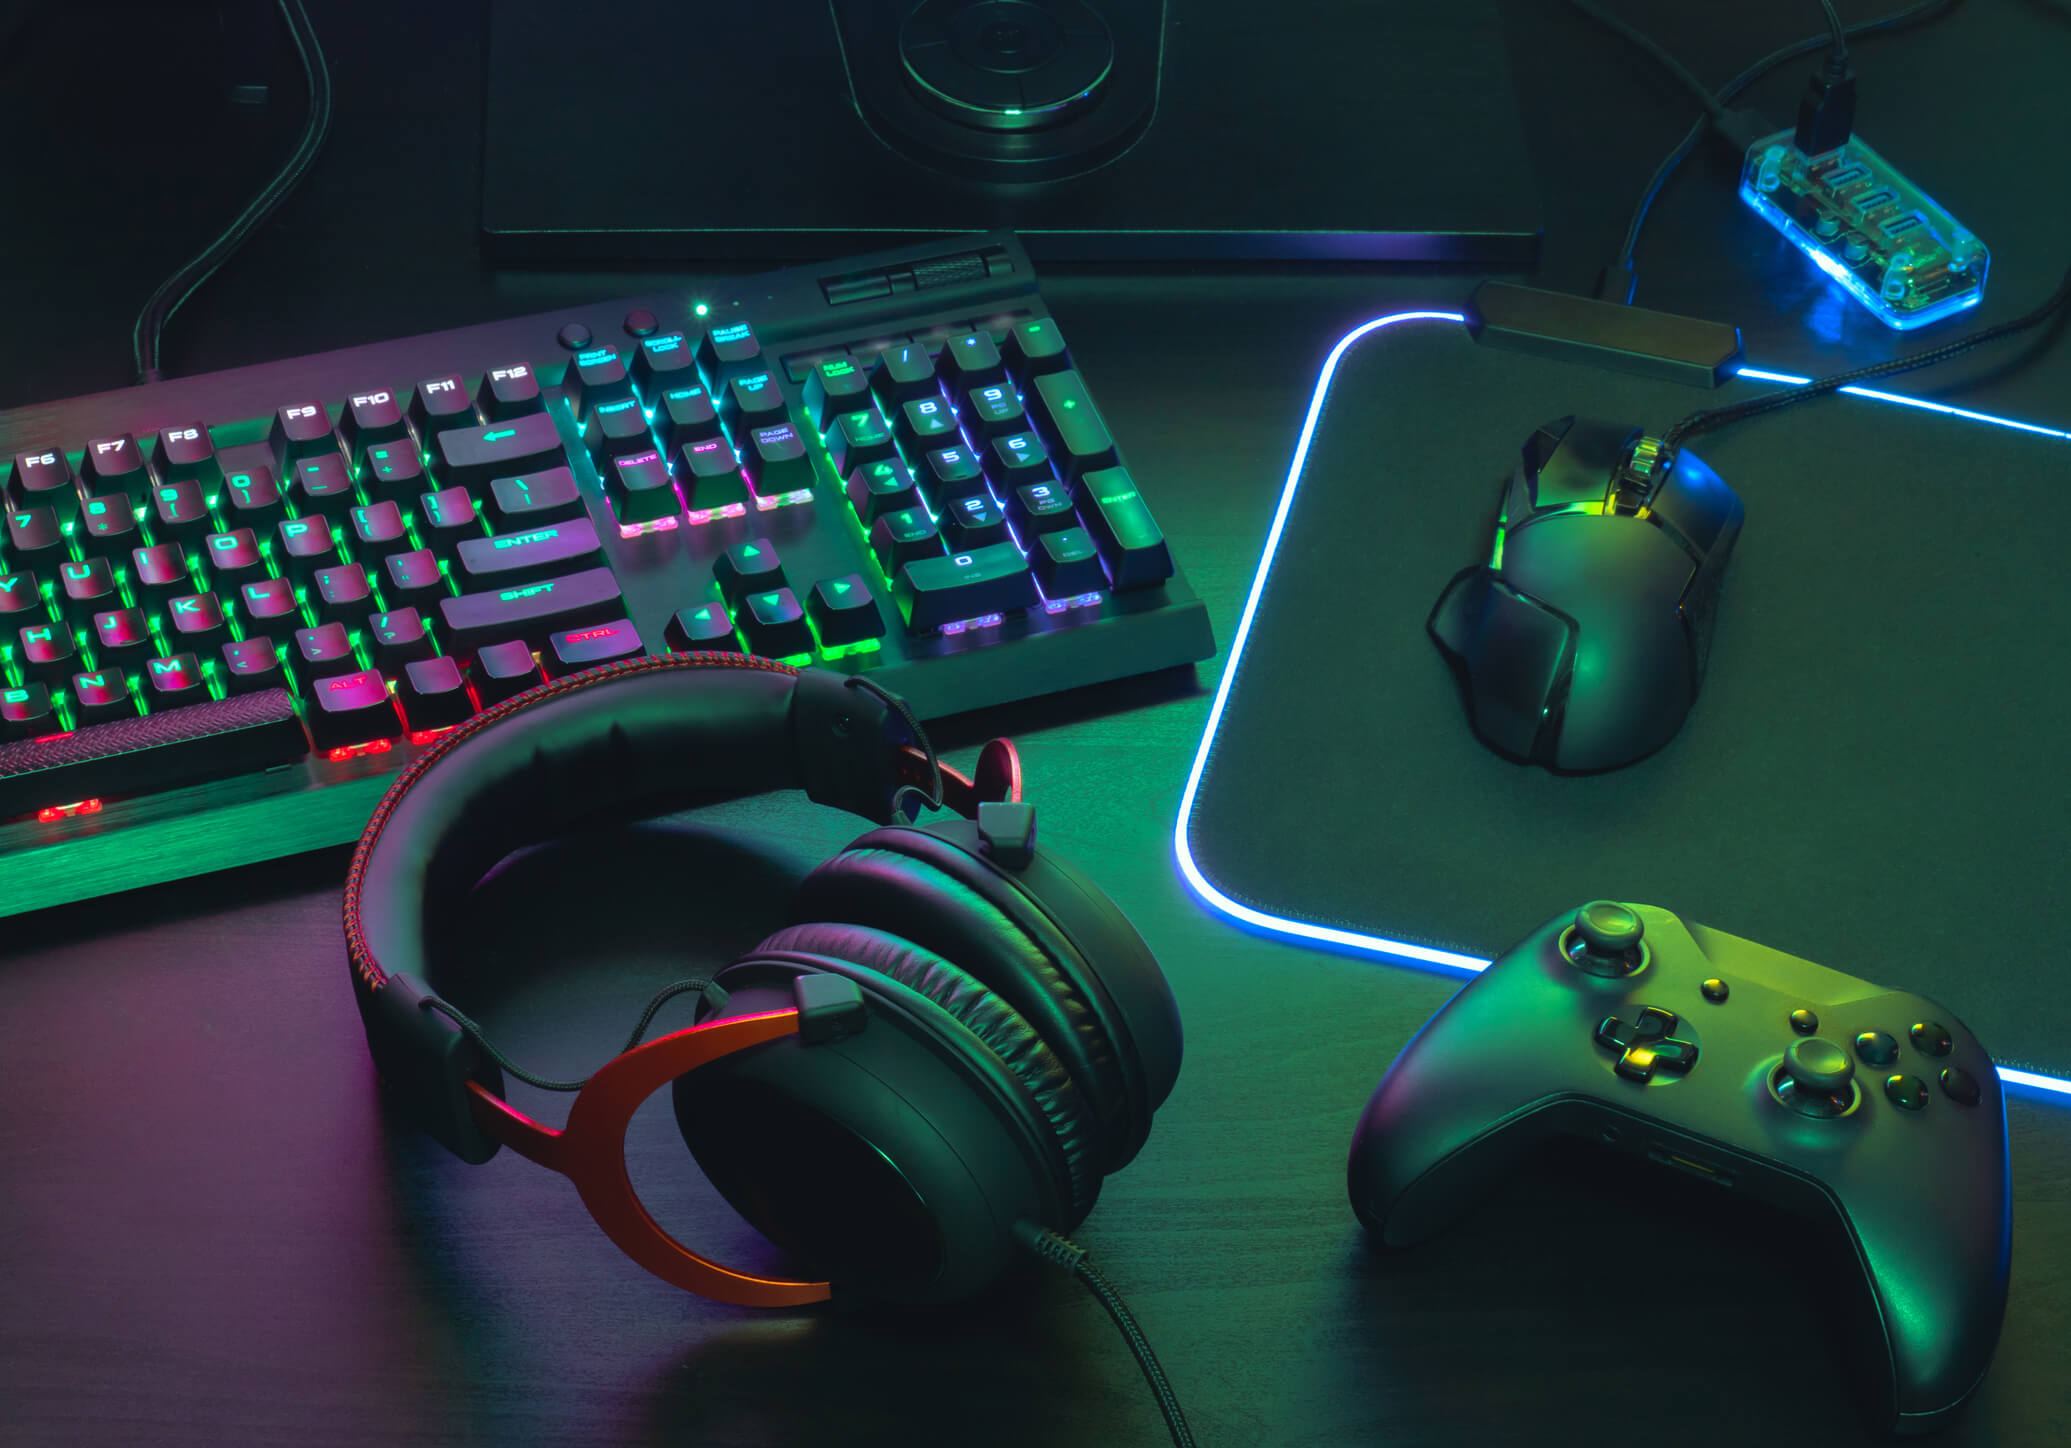 Gamer desktop setup with headphones, mouse, controller, and RGB keyboard and mousepad